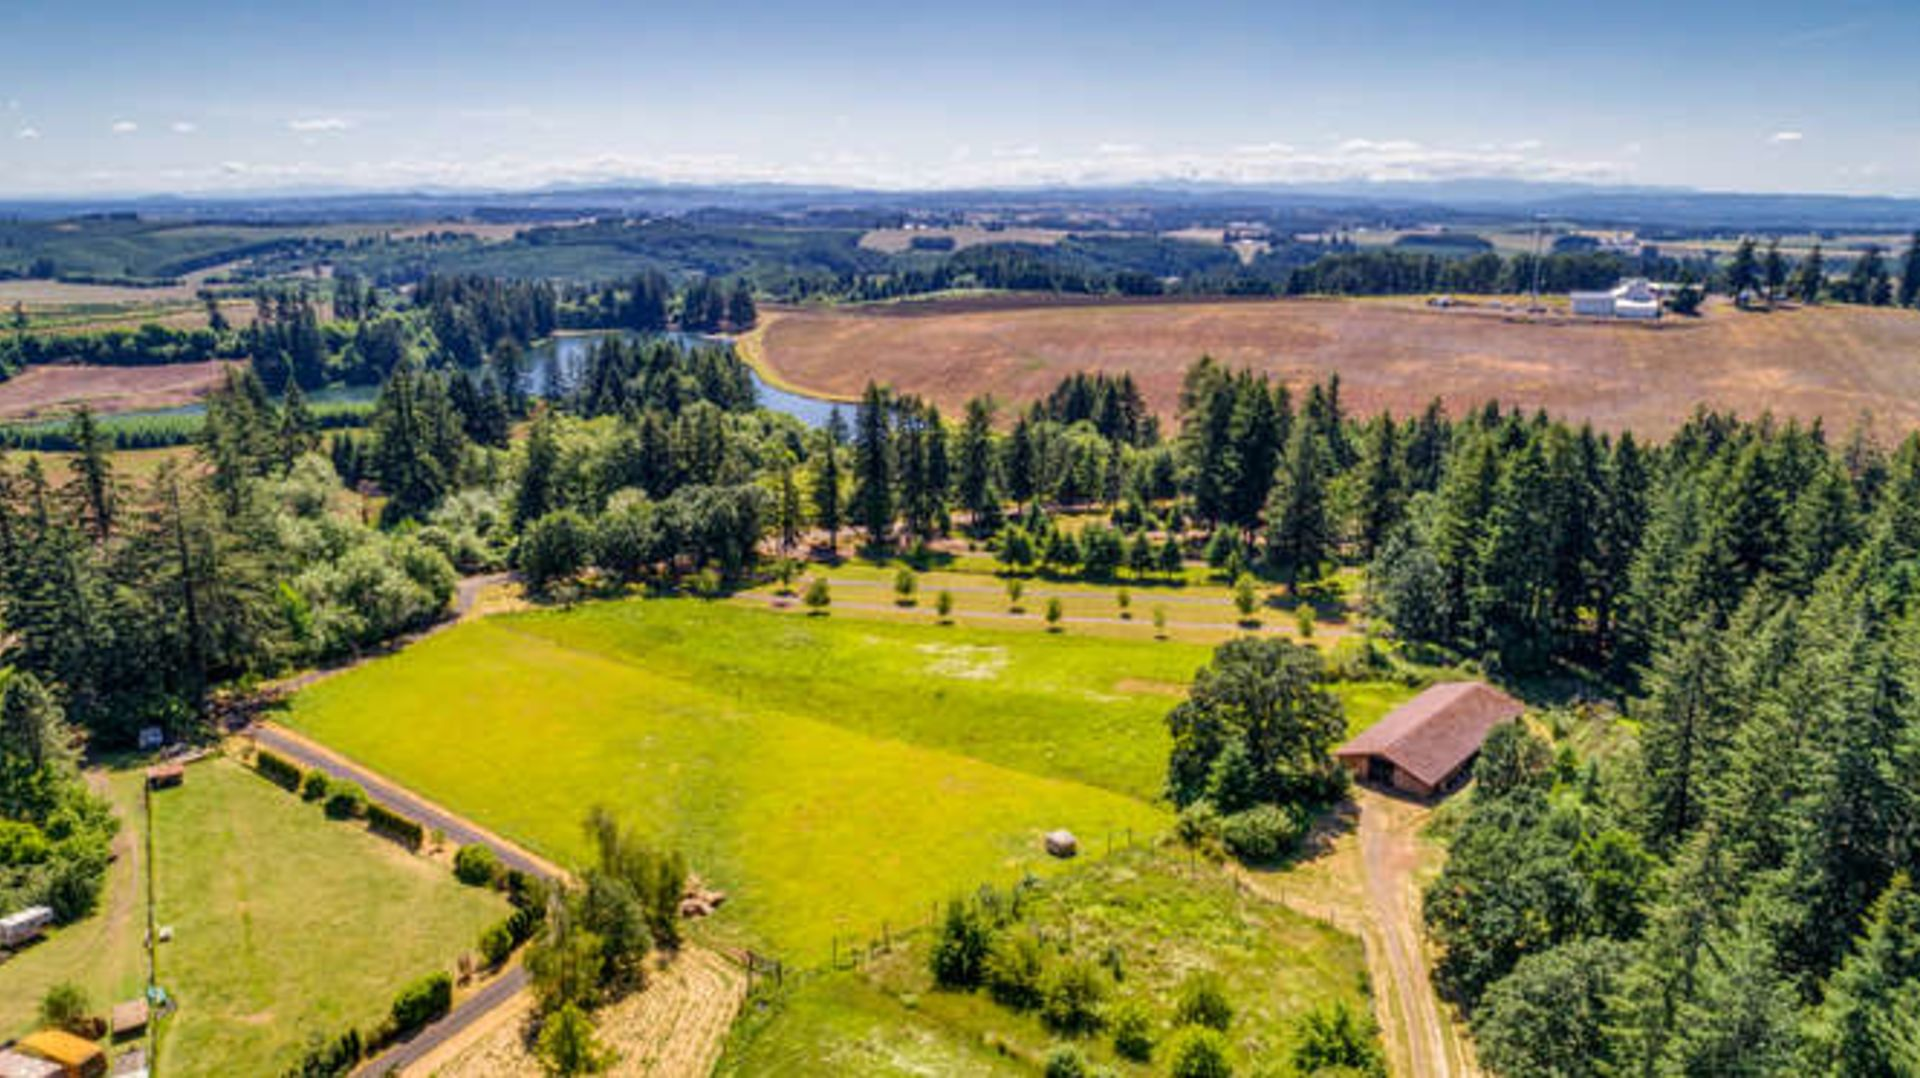 Don't Lose Money By Using Online Valuations For Your Oregon Rural Real Estate